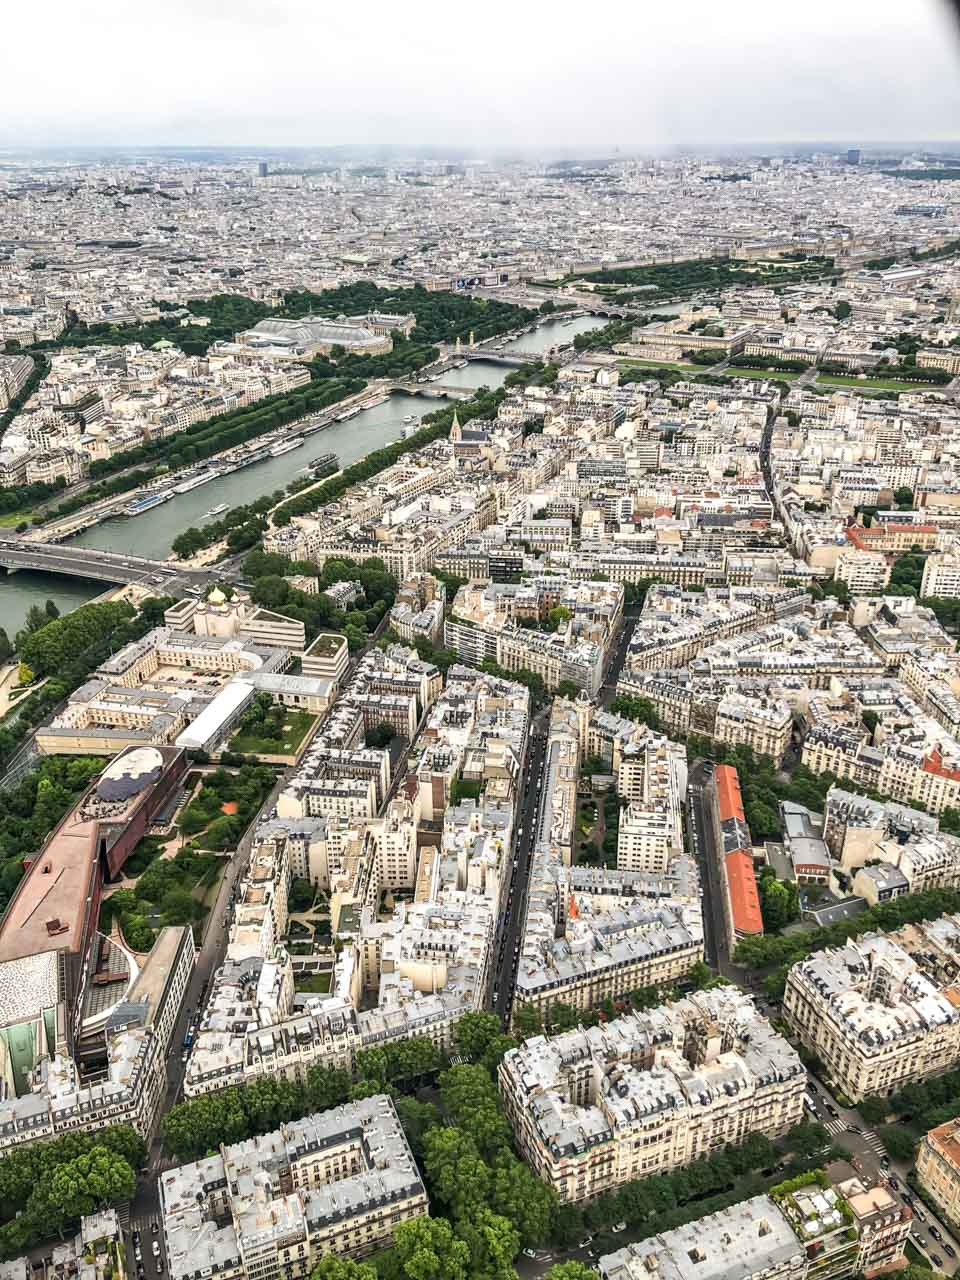 An aerial view of Paris, France seen from the top of the Eiffel Tower